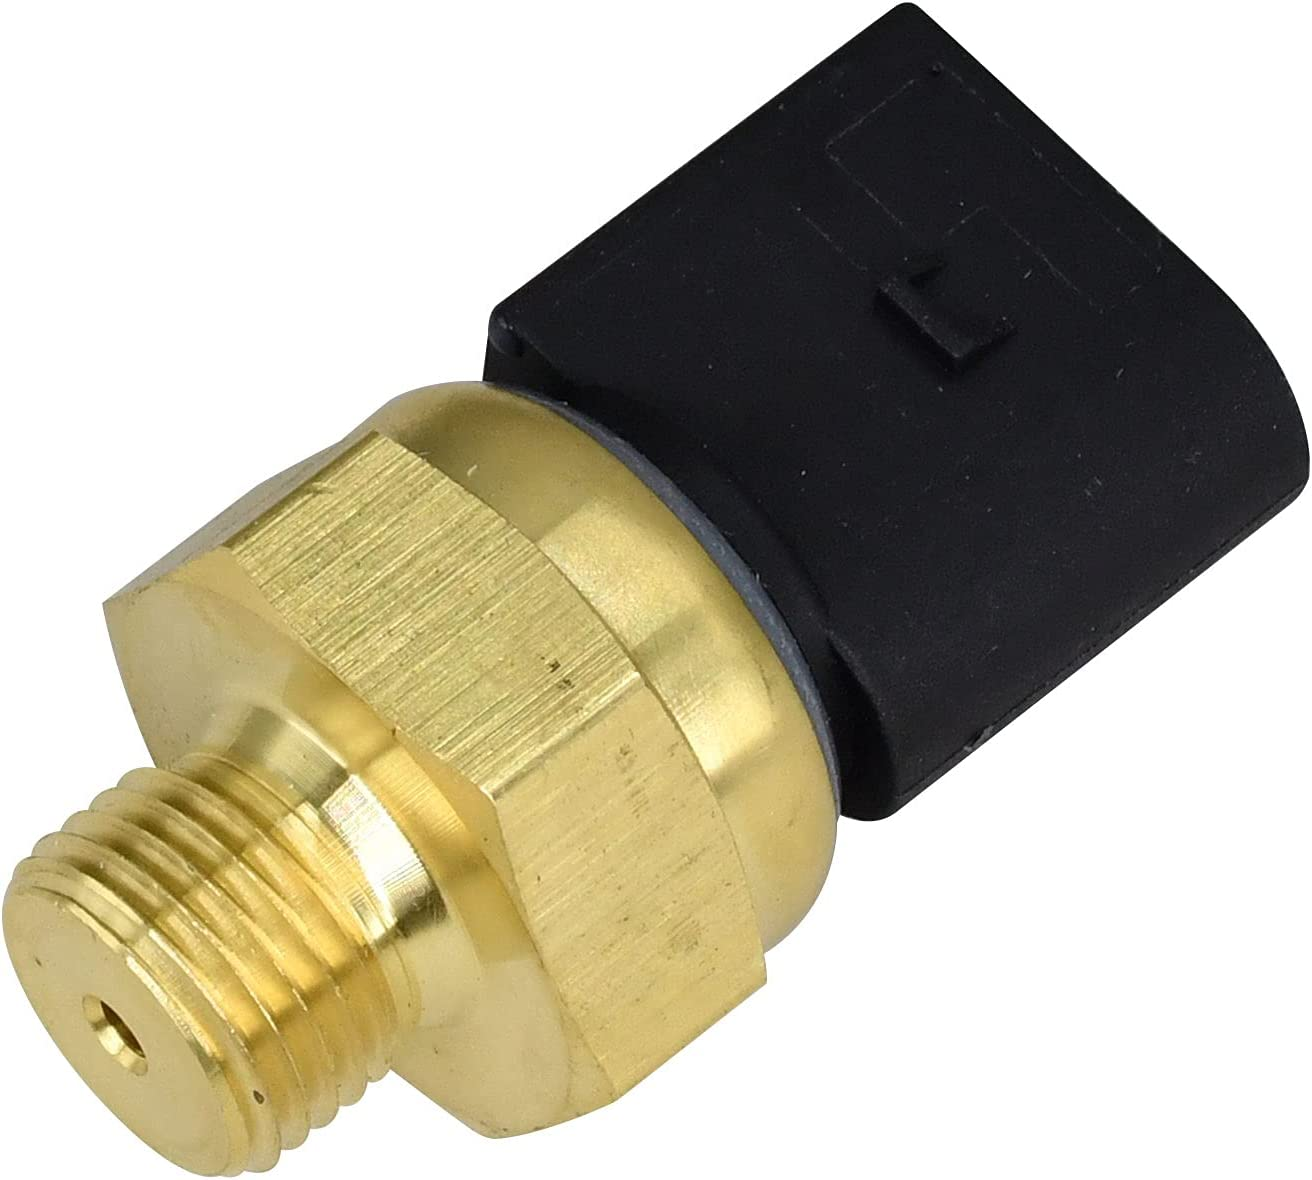 Notonmek Durable 0041534928 Oil Spring new work one after another 600609400 Sensor Pressure Excellent Switch